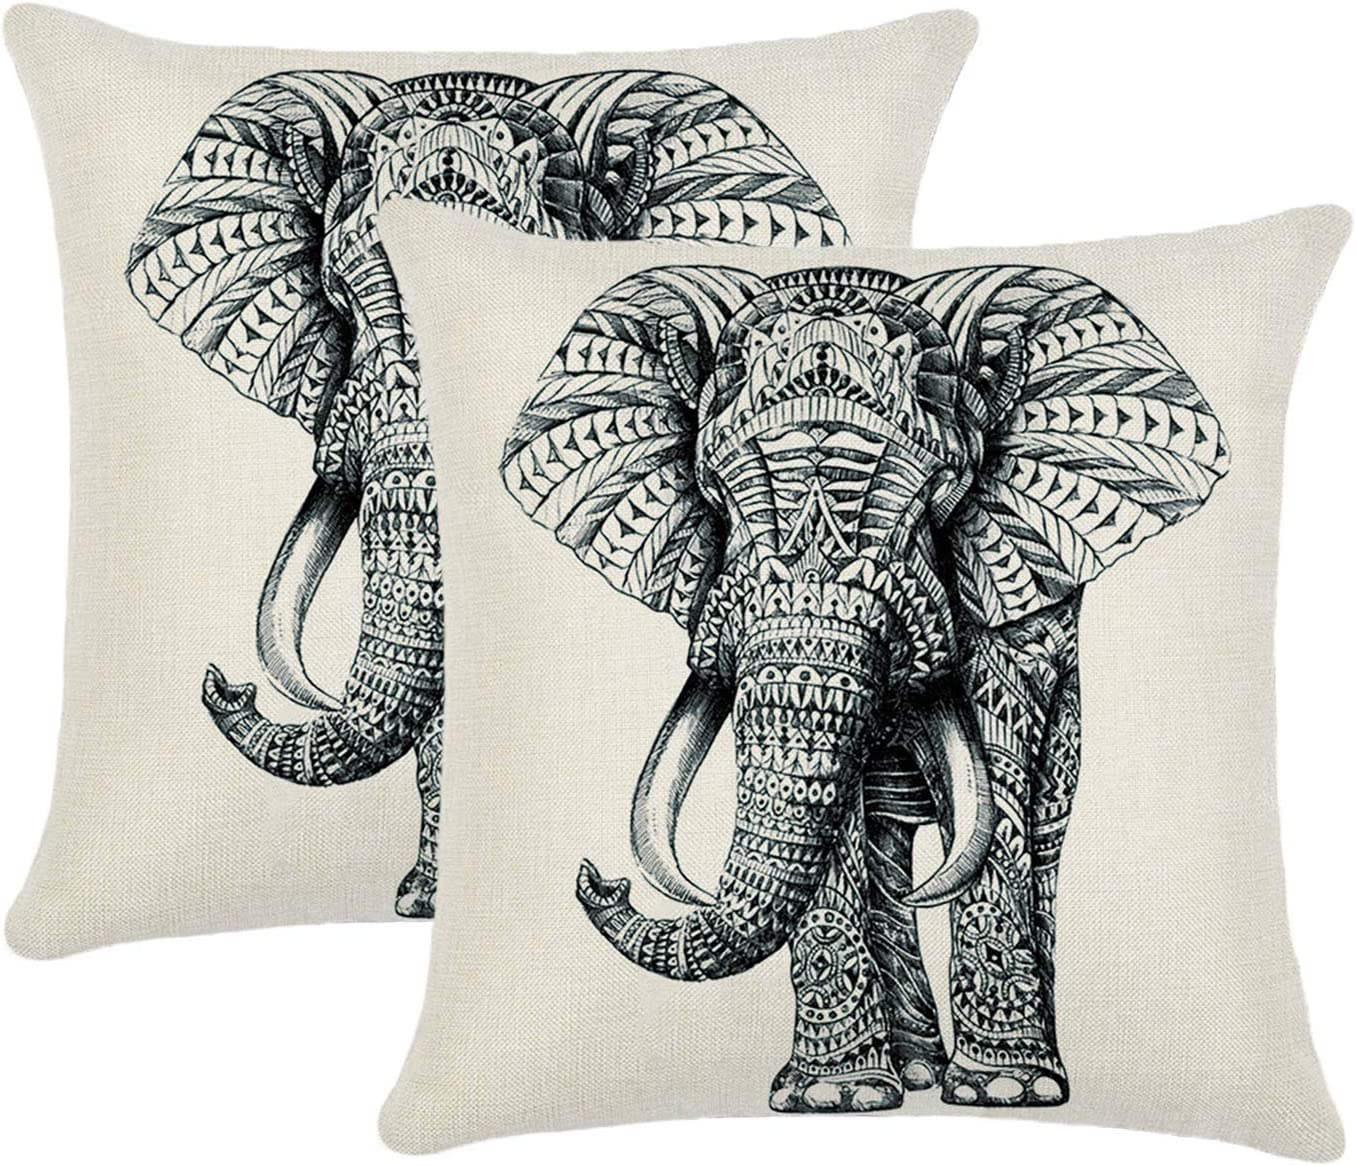 Amazon Com Jahosin Set Of 2 Throw Pillow Covers 18 X 18 Inches Decorative Elephant Cushion Case Sketch Elephant Home Kitchen